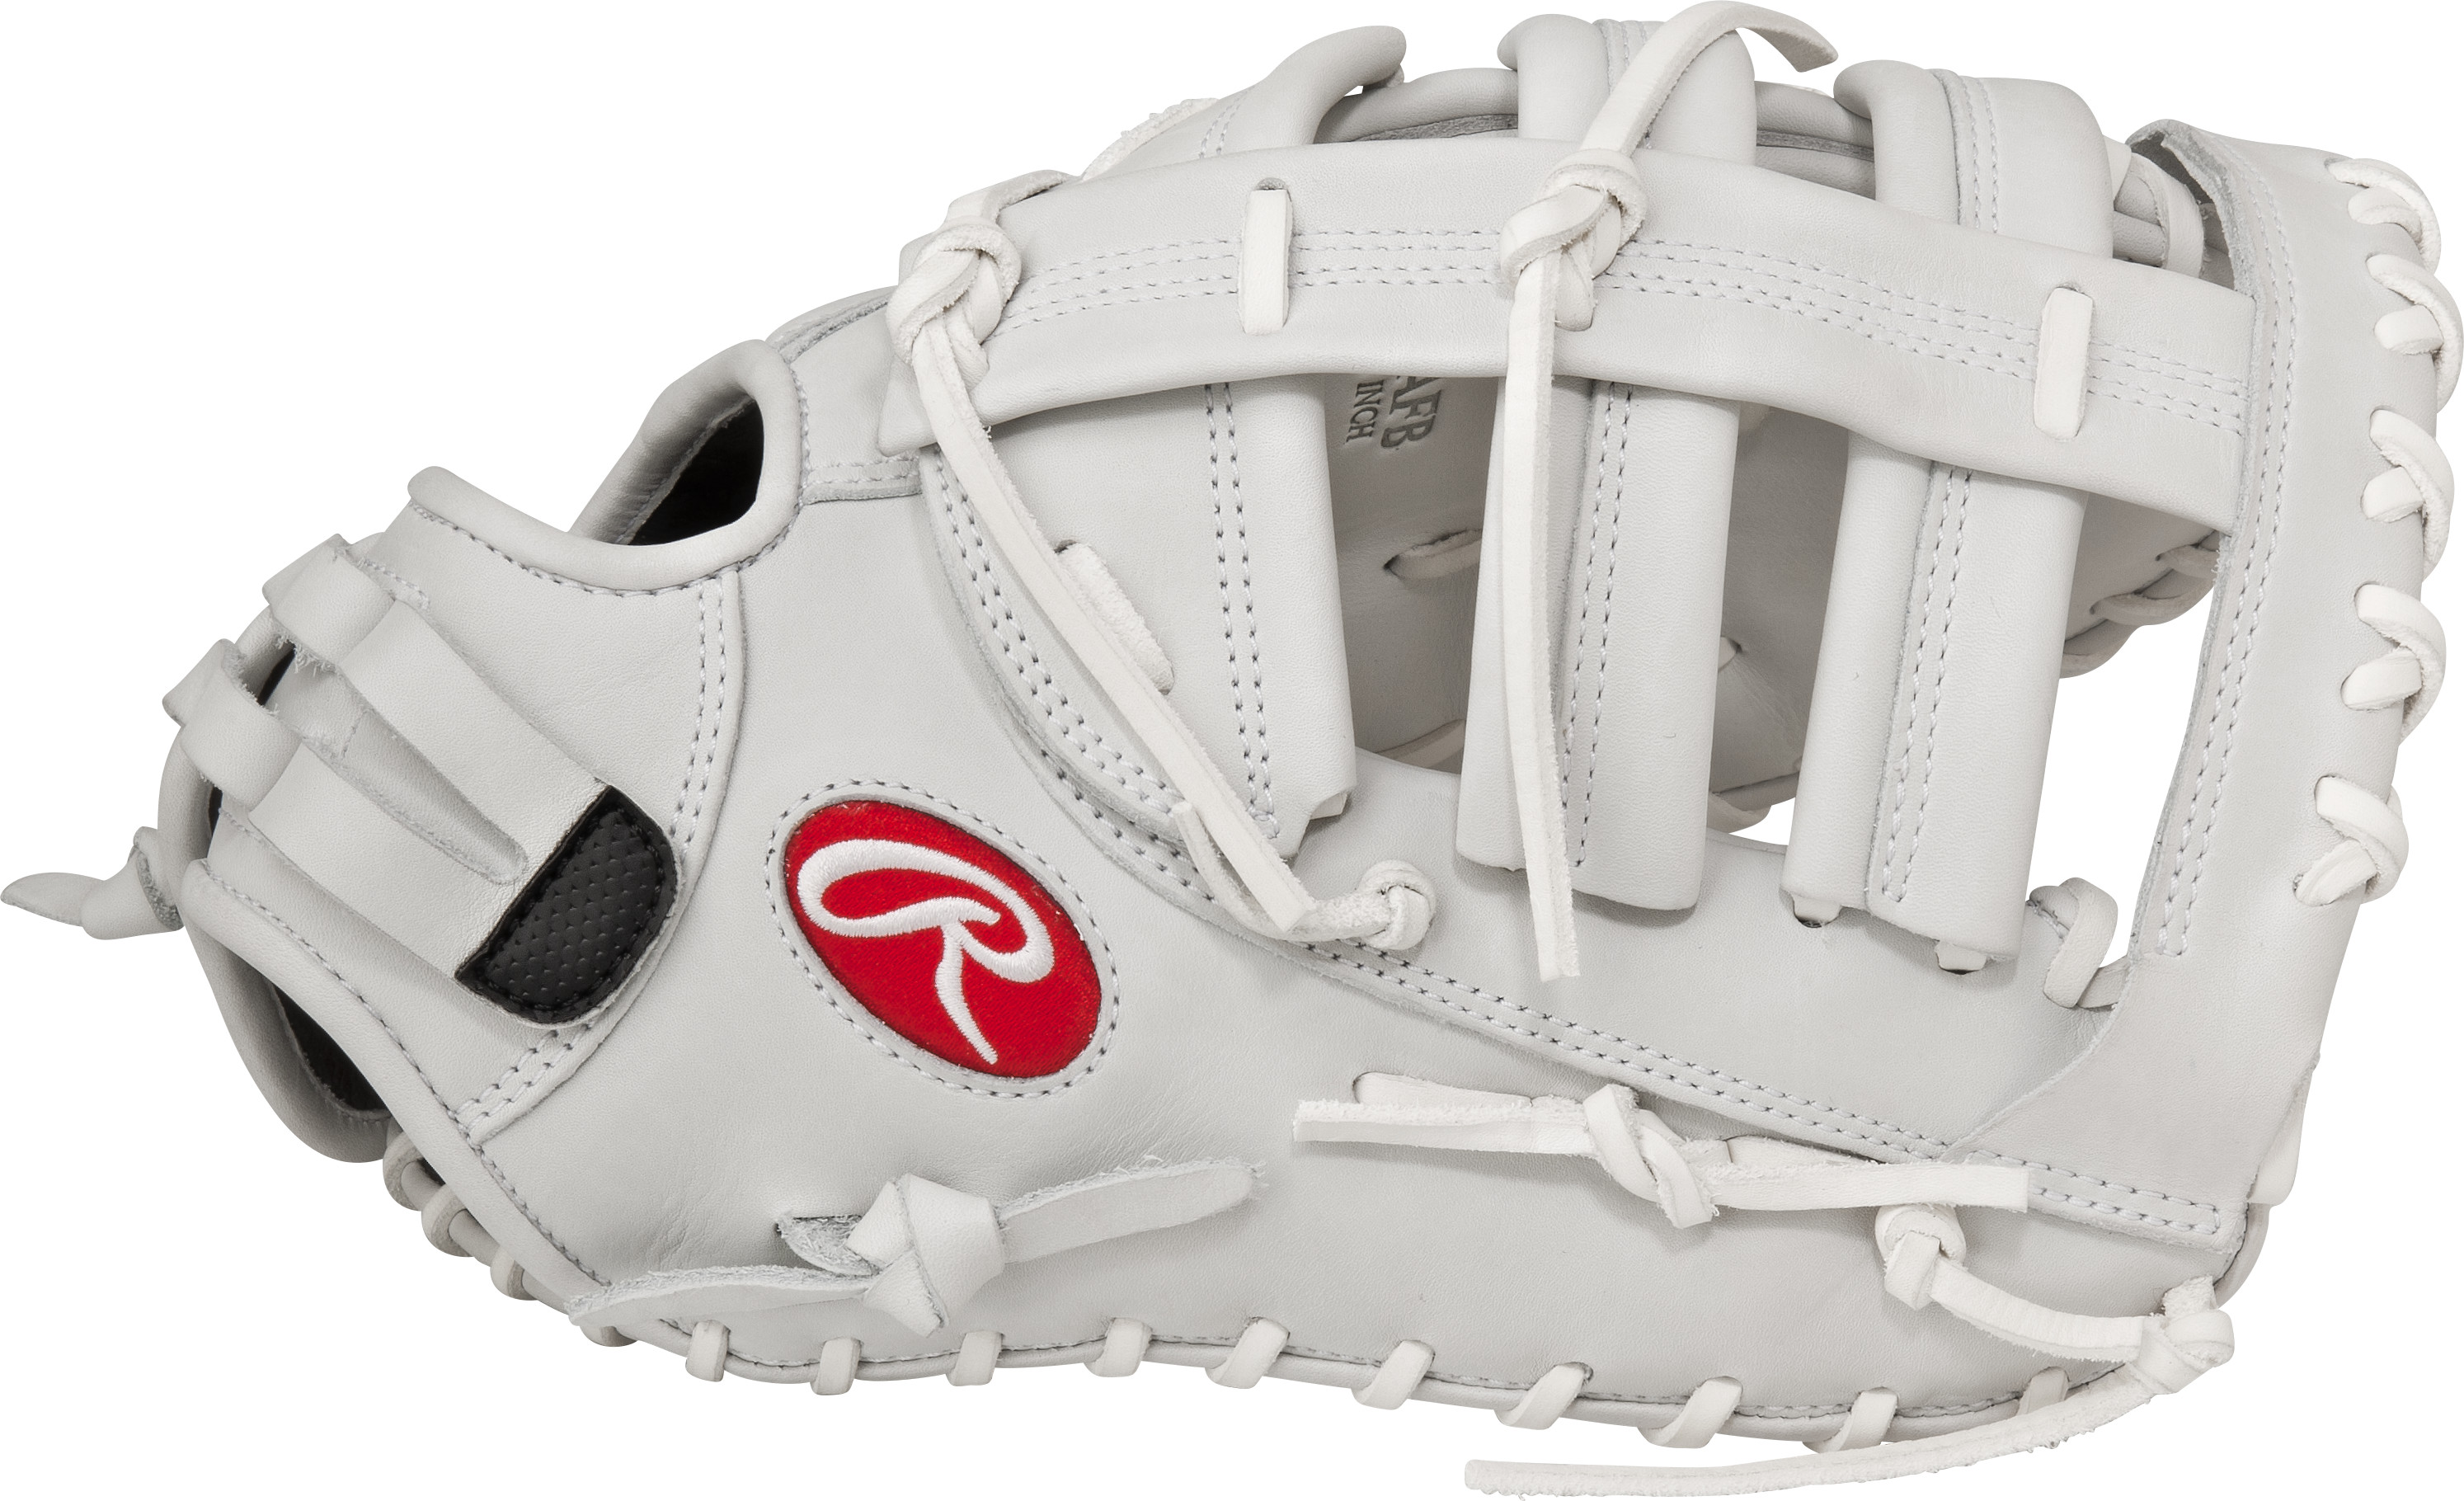 http://www.bestbatdeals.com/images/gloves/rawlings/RLAFB_thumb.jpg